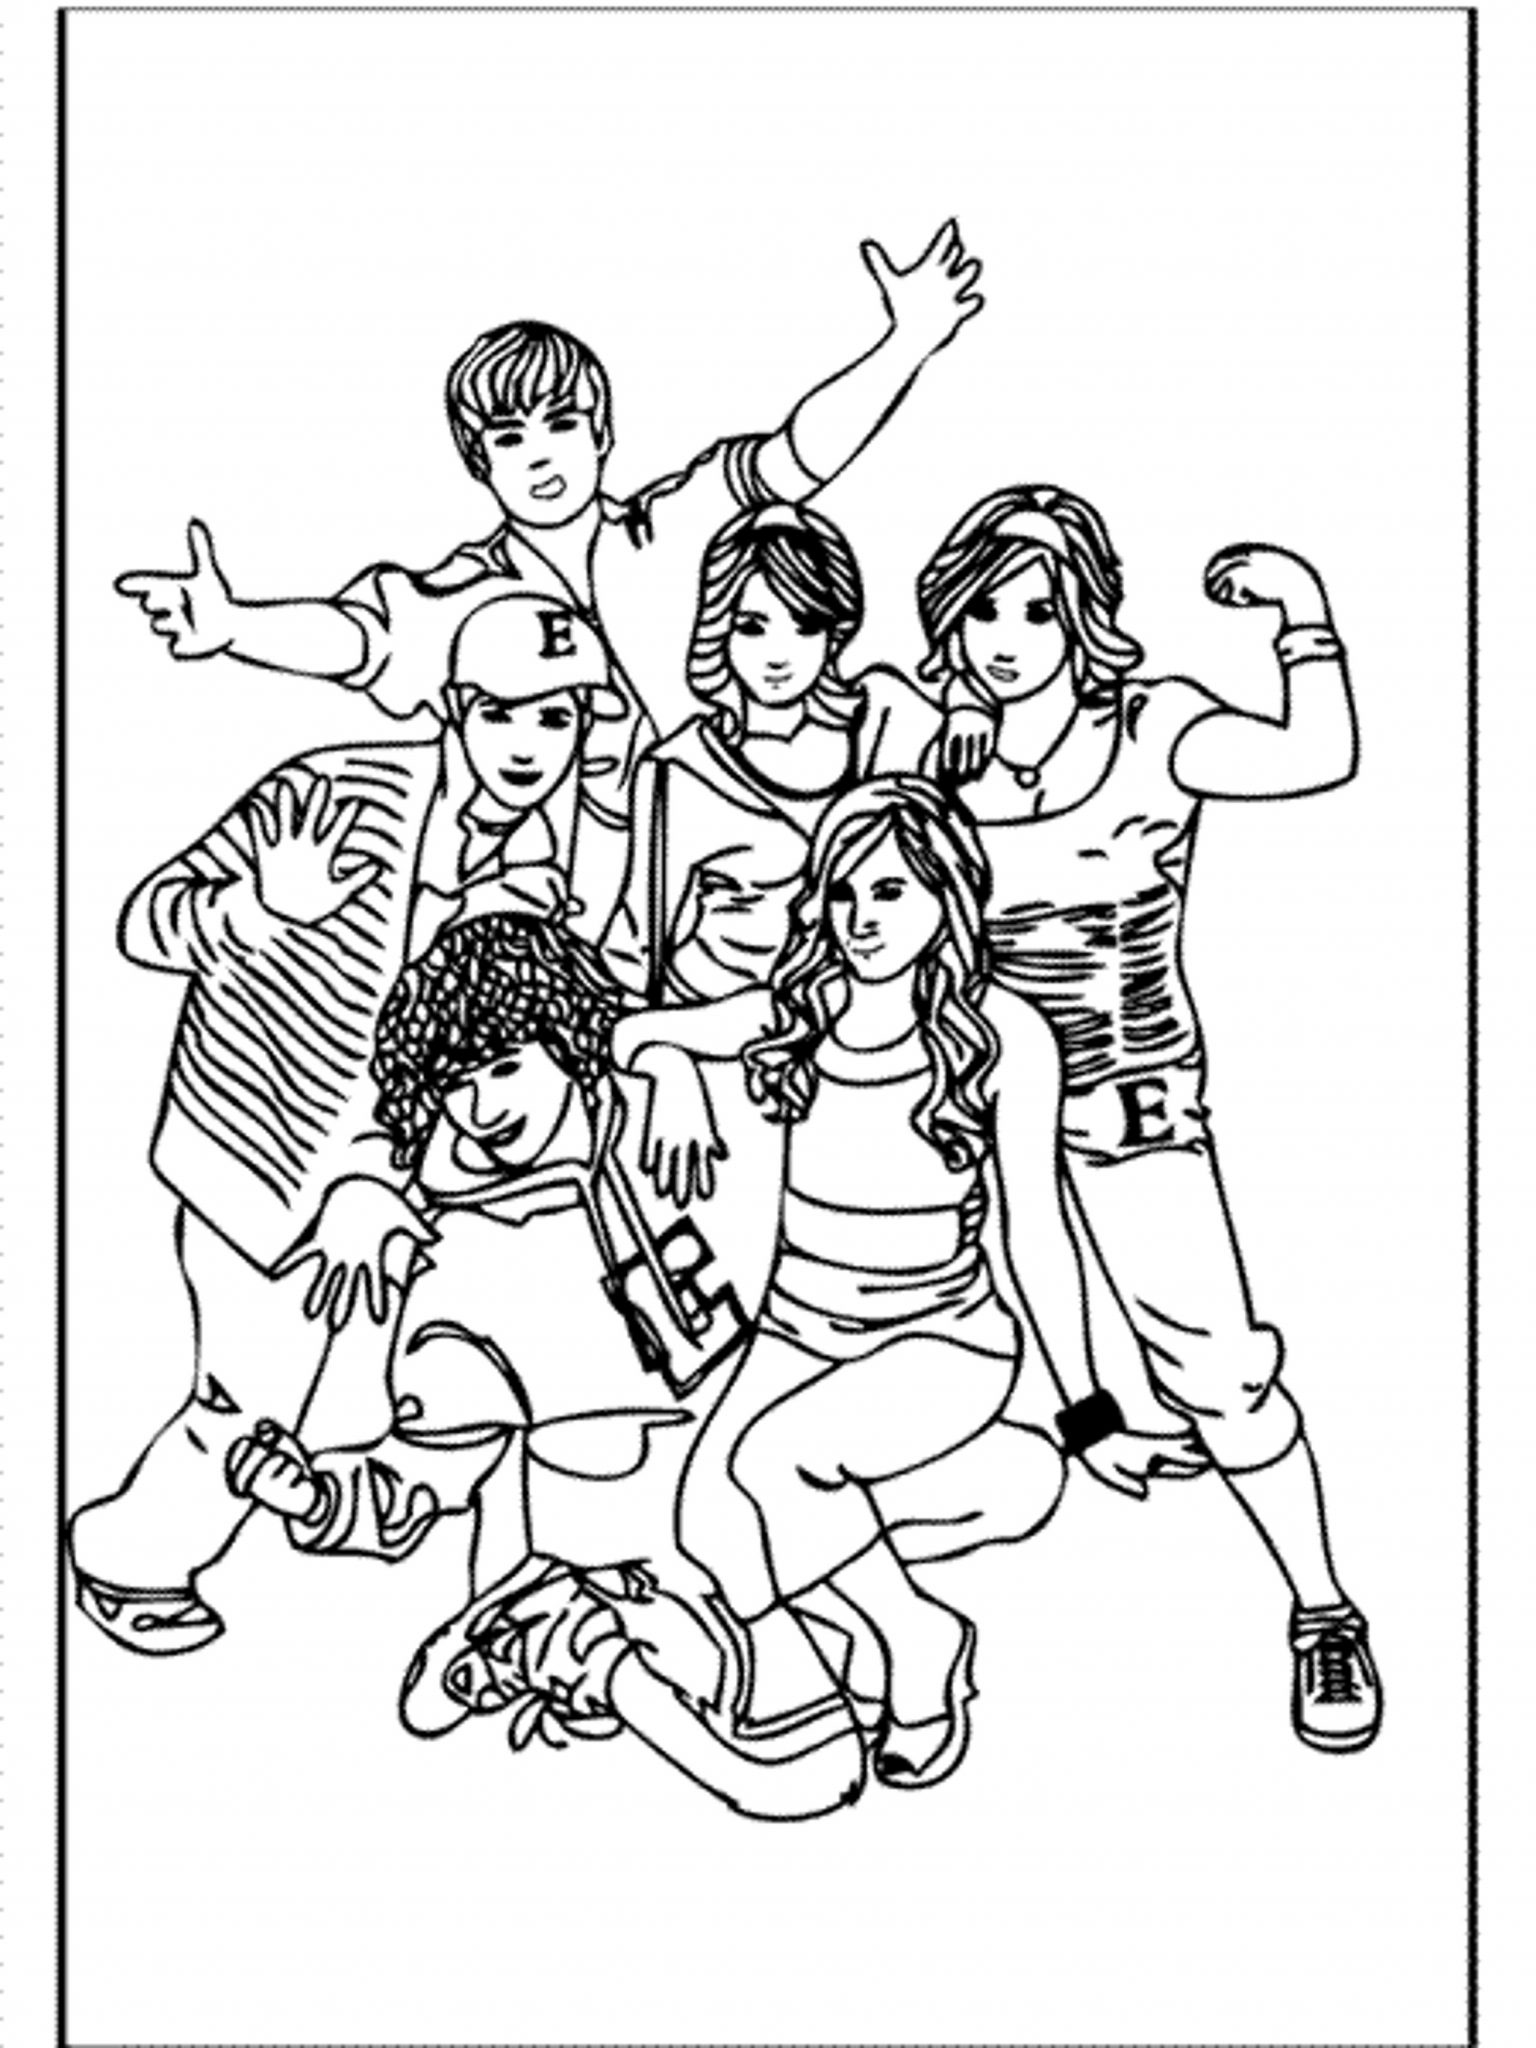 Print download coloring pages for girls recommend a hobby to a